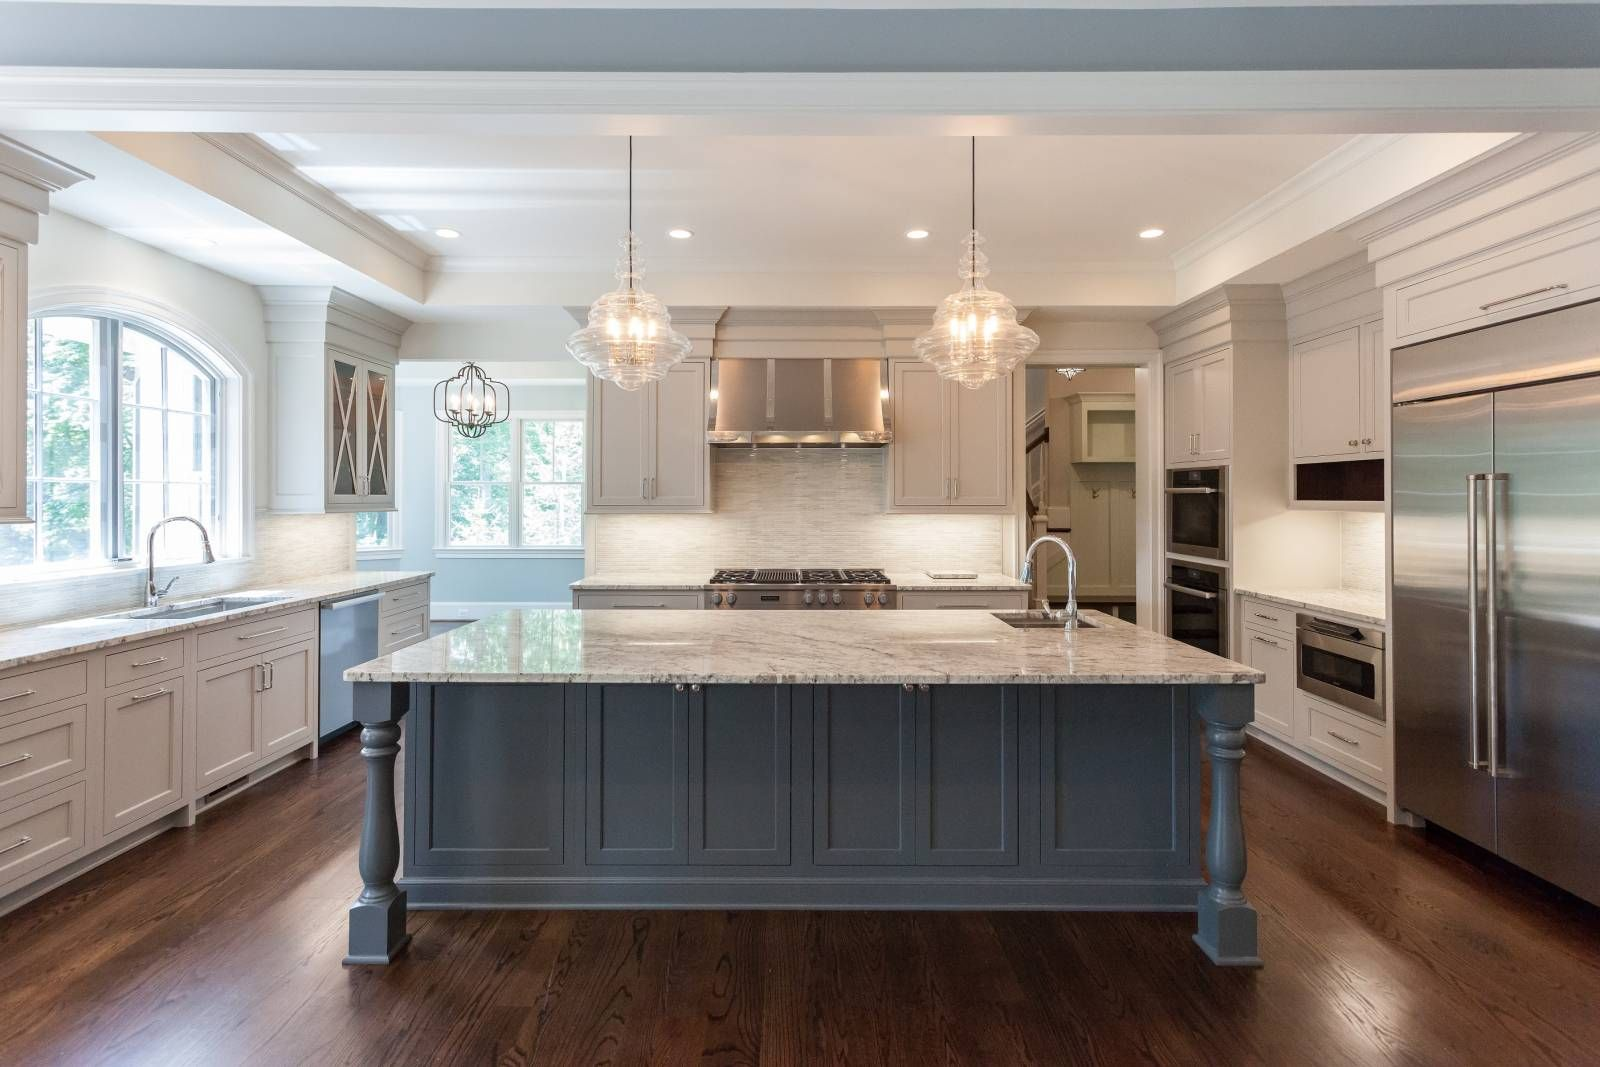 Kitchen With Contrast Gray Island And Beige Cabinets Featuring Arched Windows And Ribbed Stainless Steel Ra Beige Kitchen Beige Kitchen Cabinets Beige Cabinets